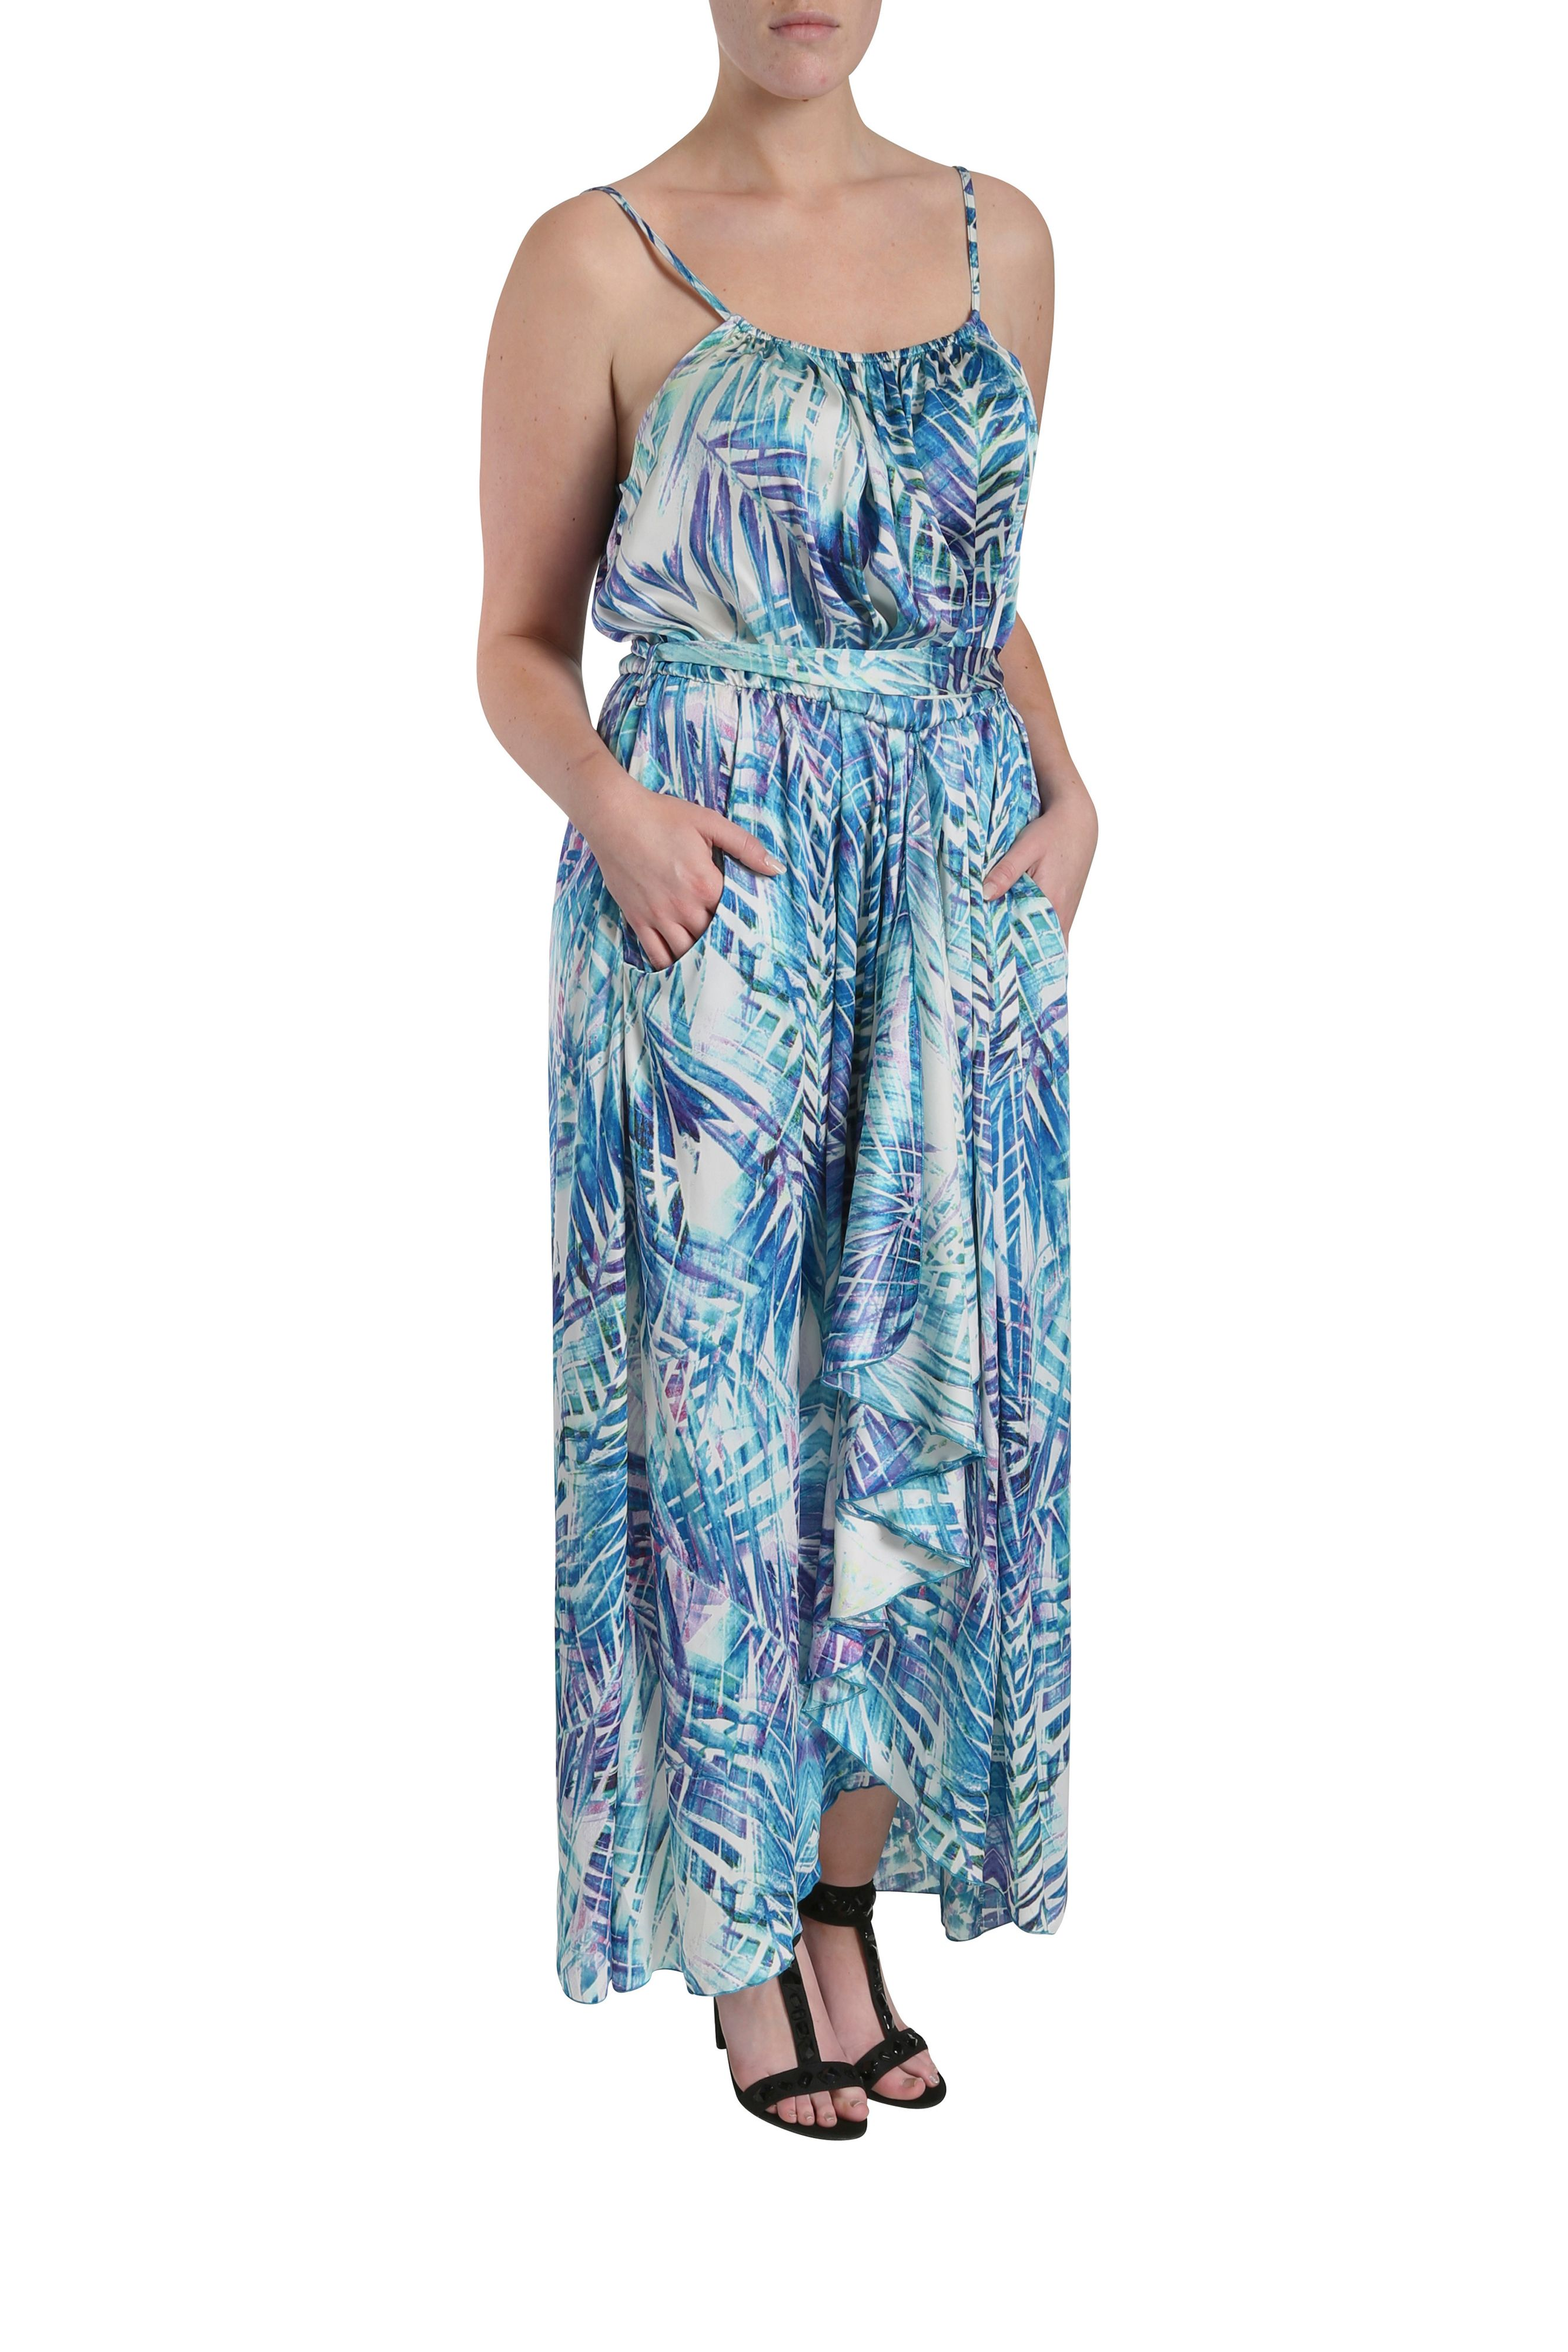 Palm tree waterfall maxi dress